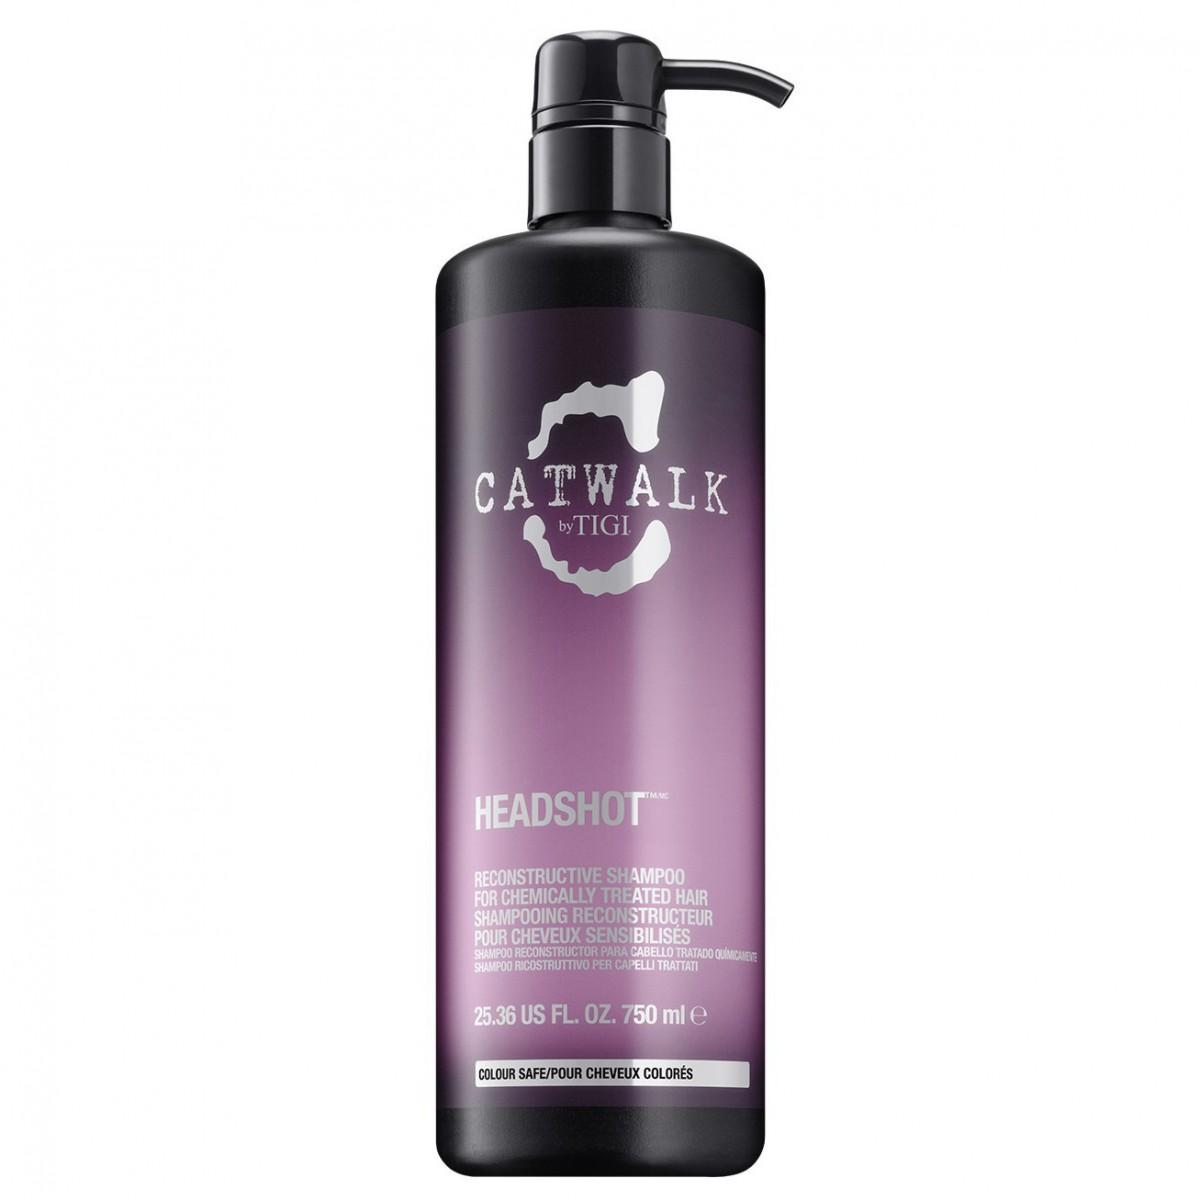 Tigi fragrances Catwalk Headshot Shampoo 750ml